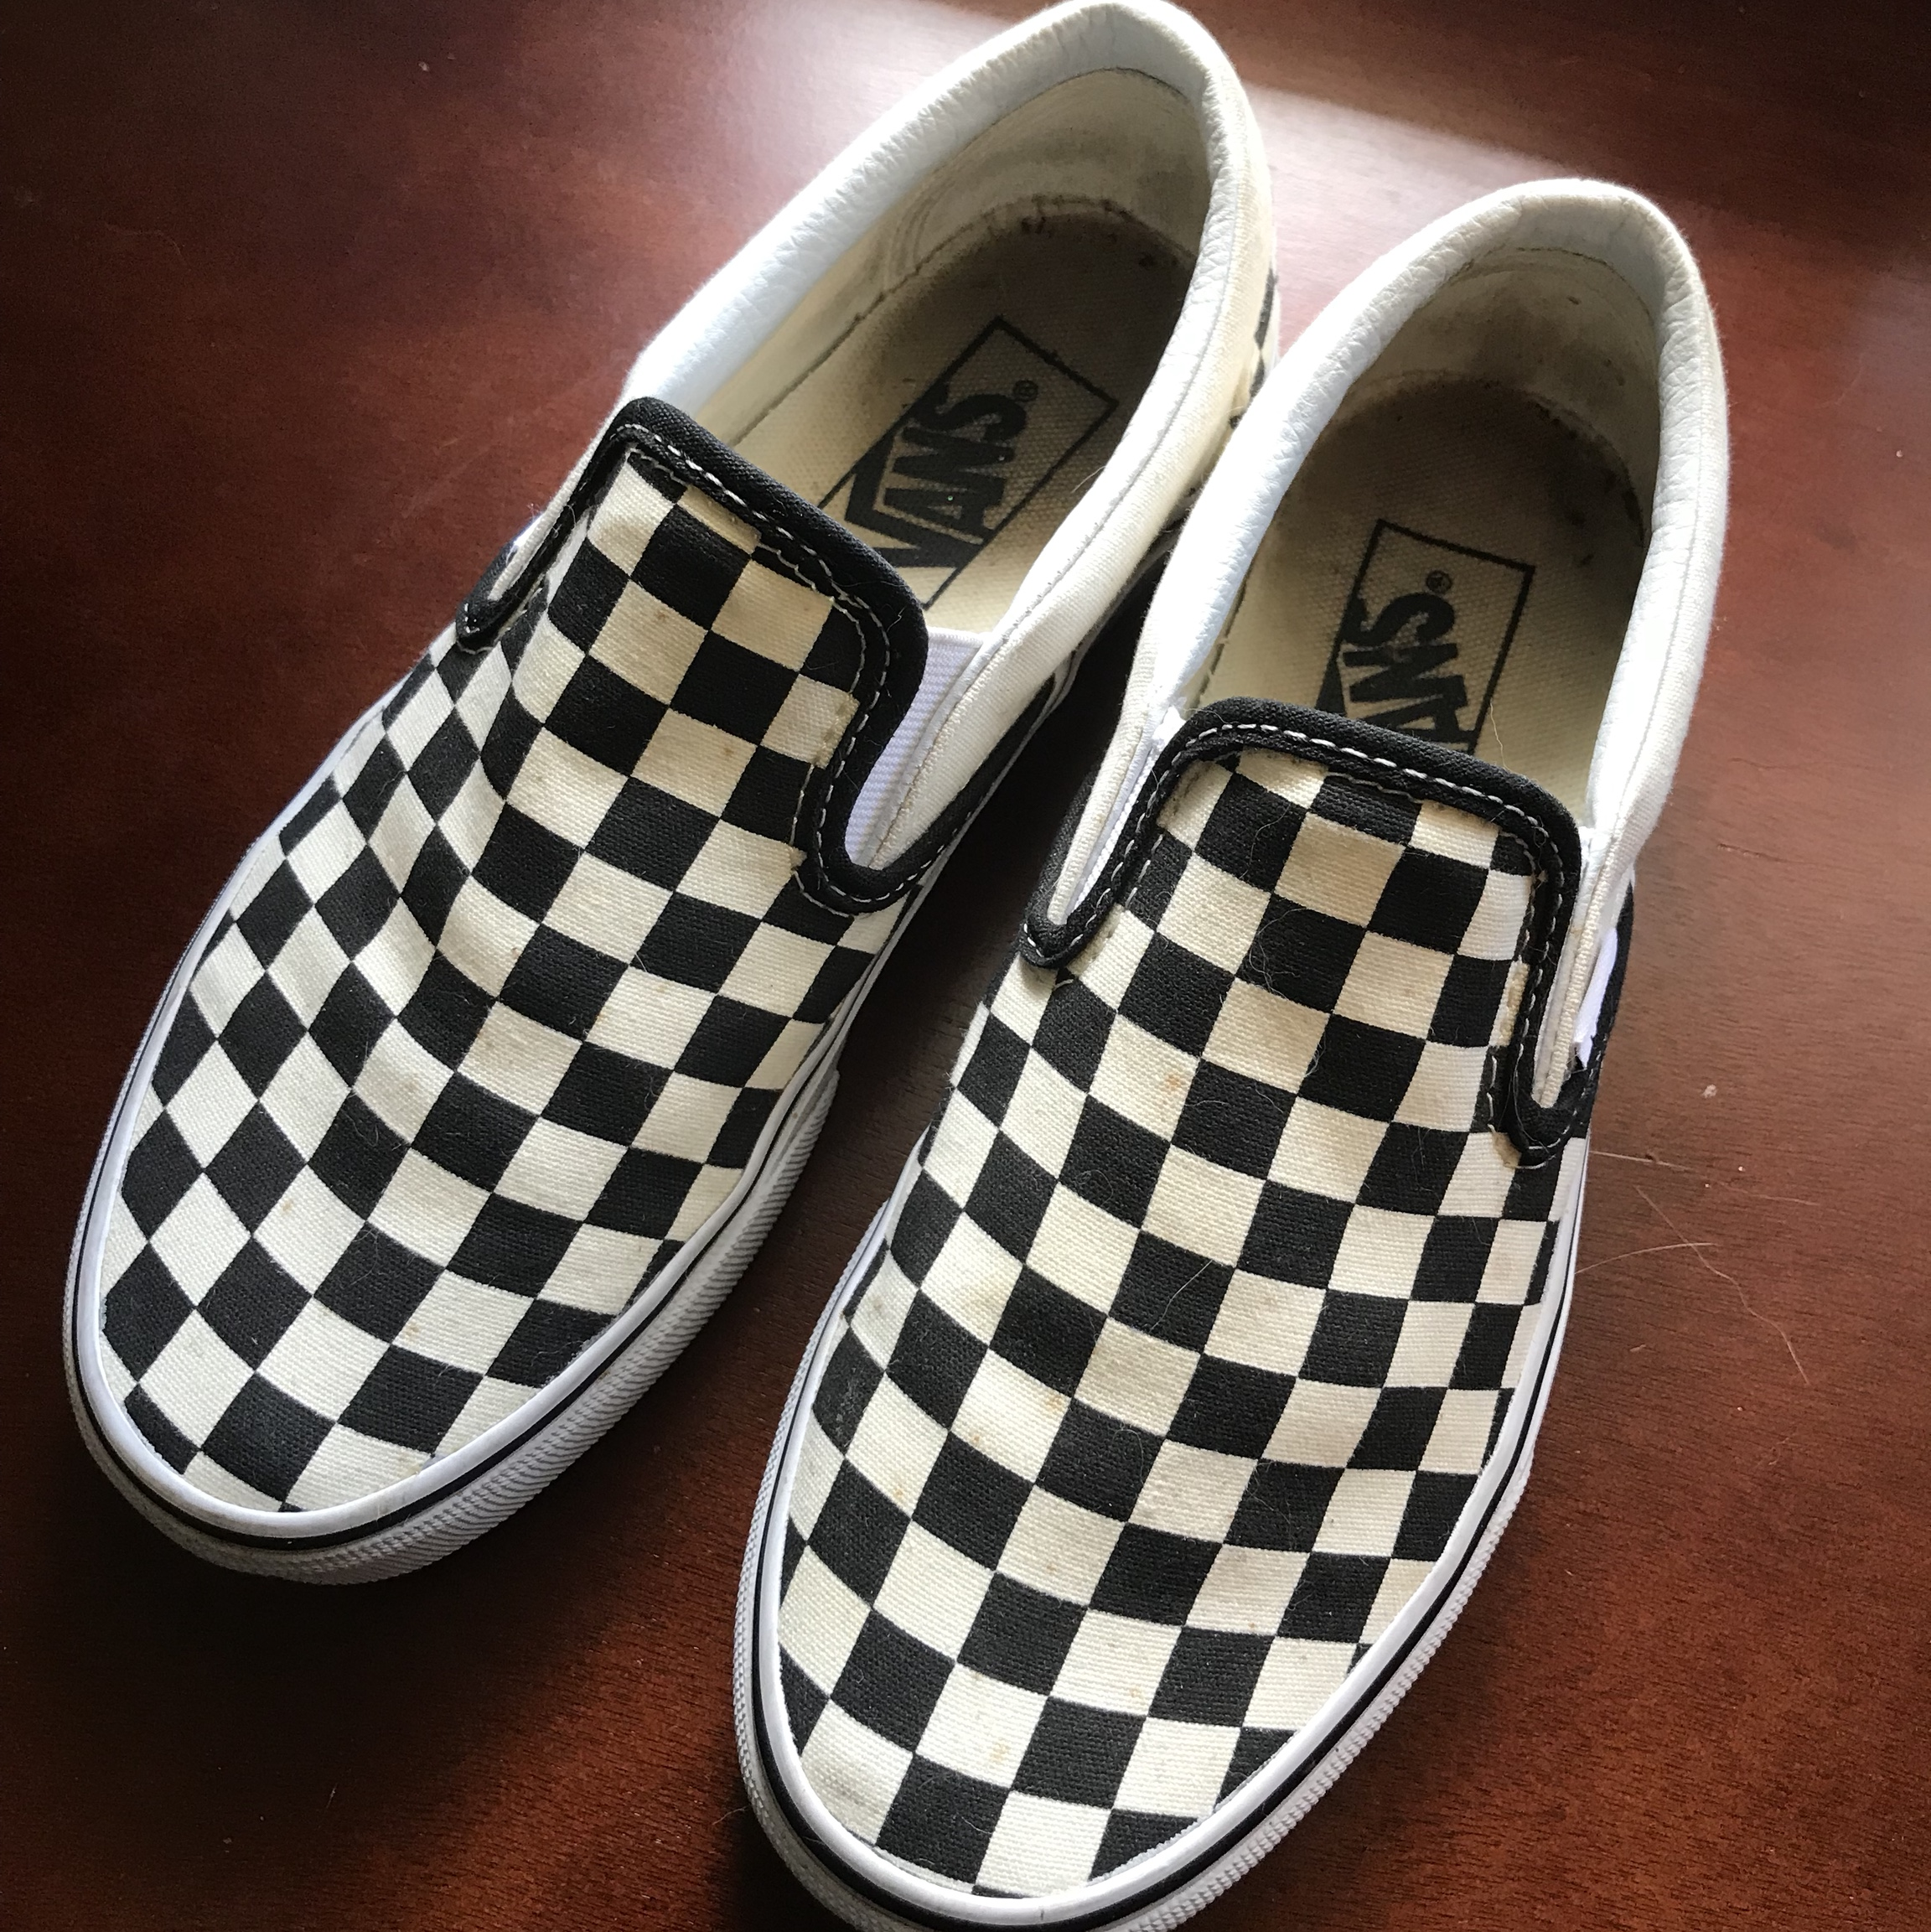 0ad7acf4f44 checkered slip-on vans. size 6.5 womens 5 mens. has some my - Depop